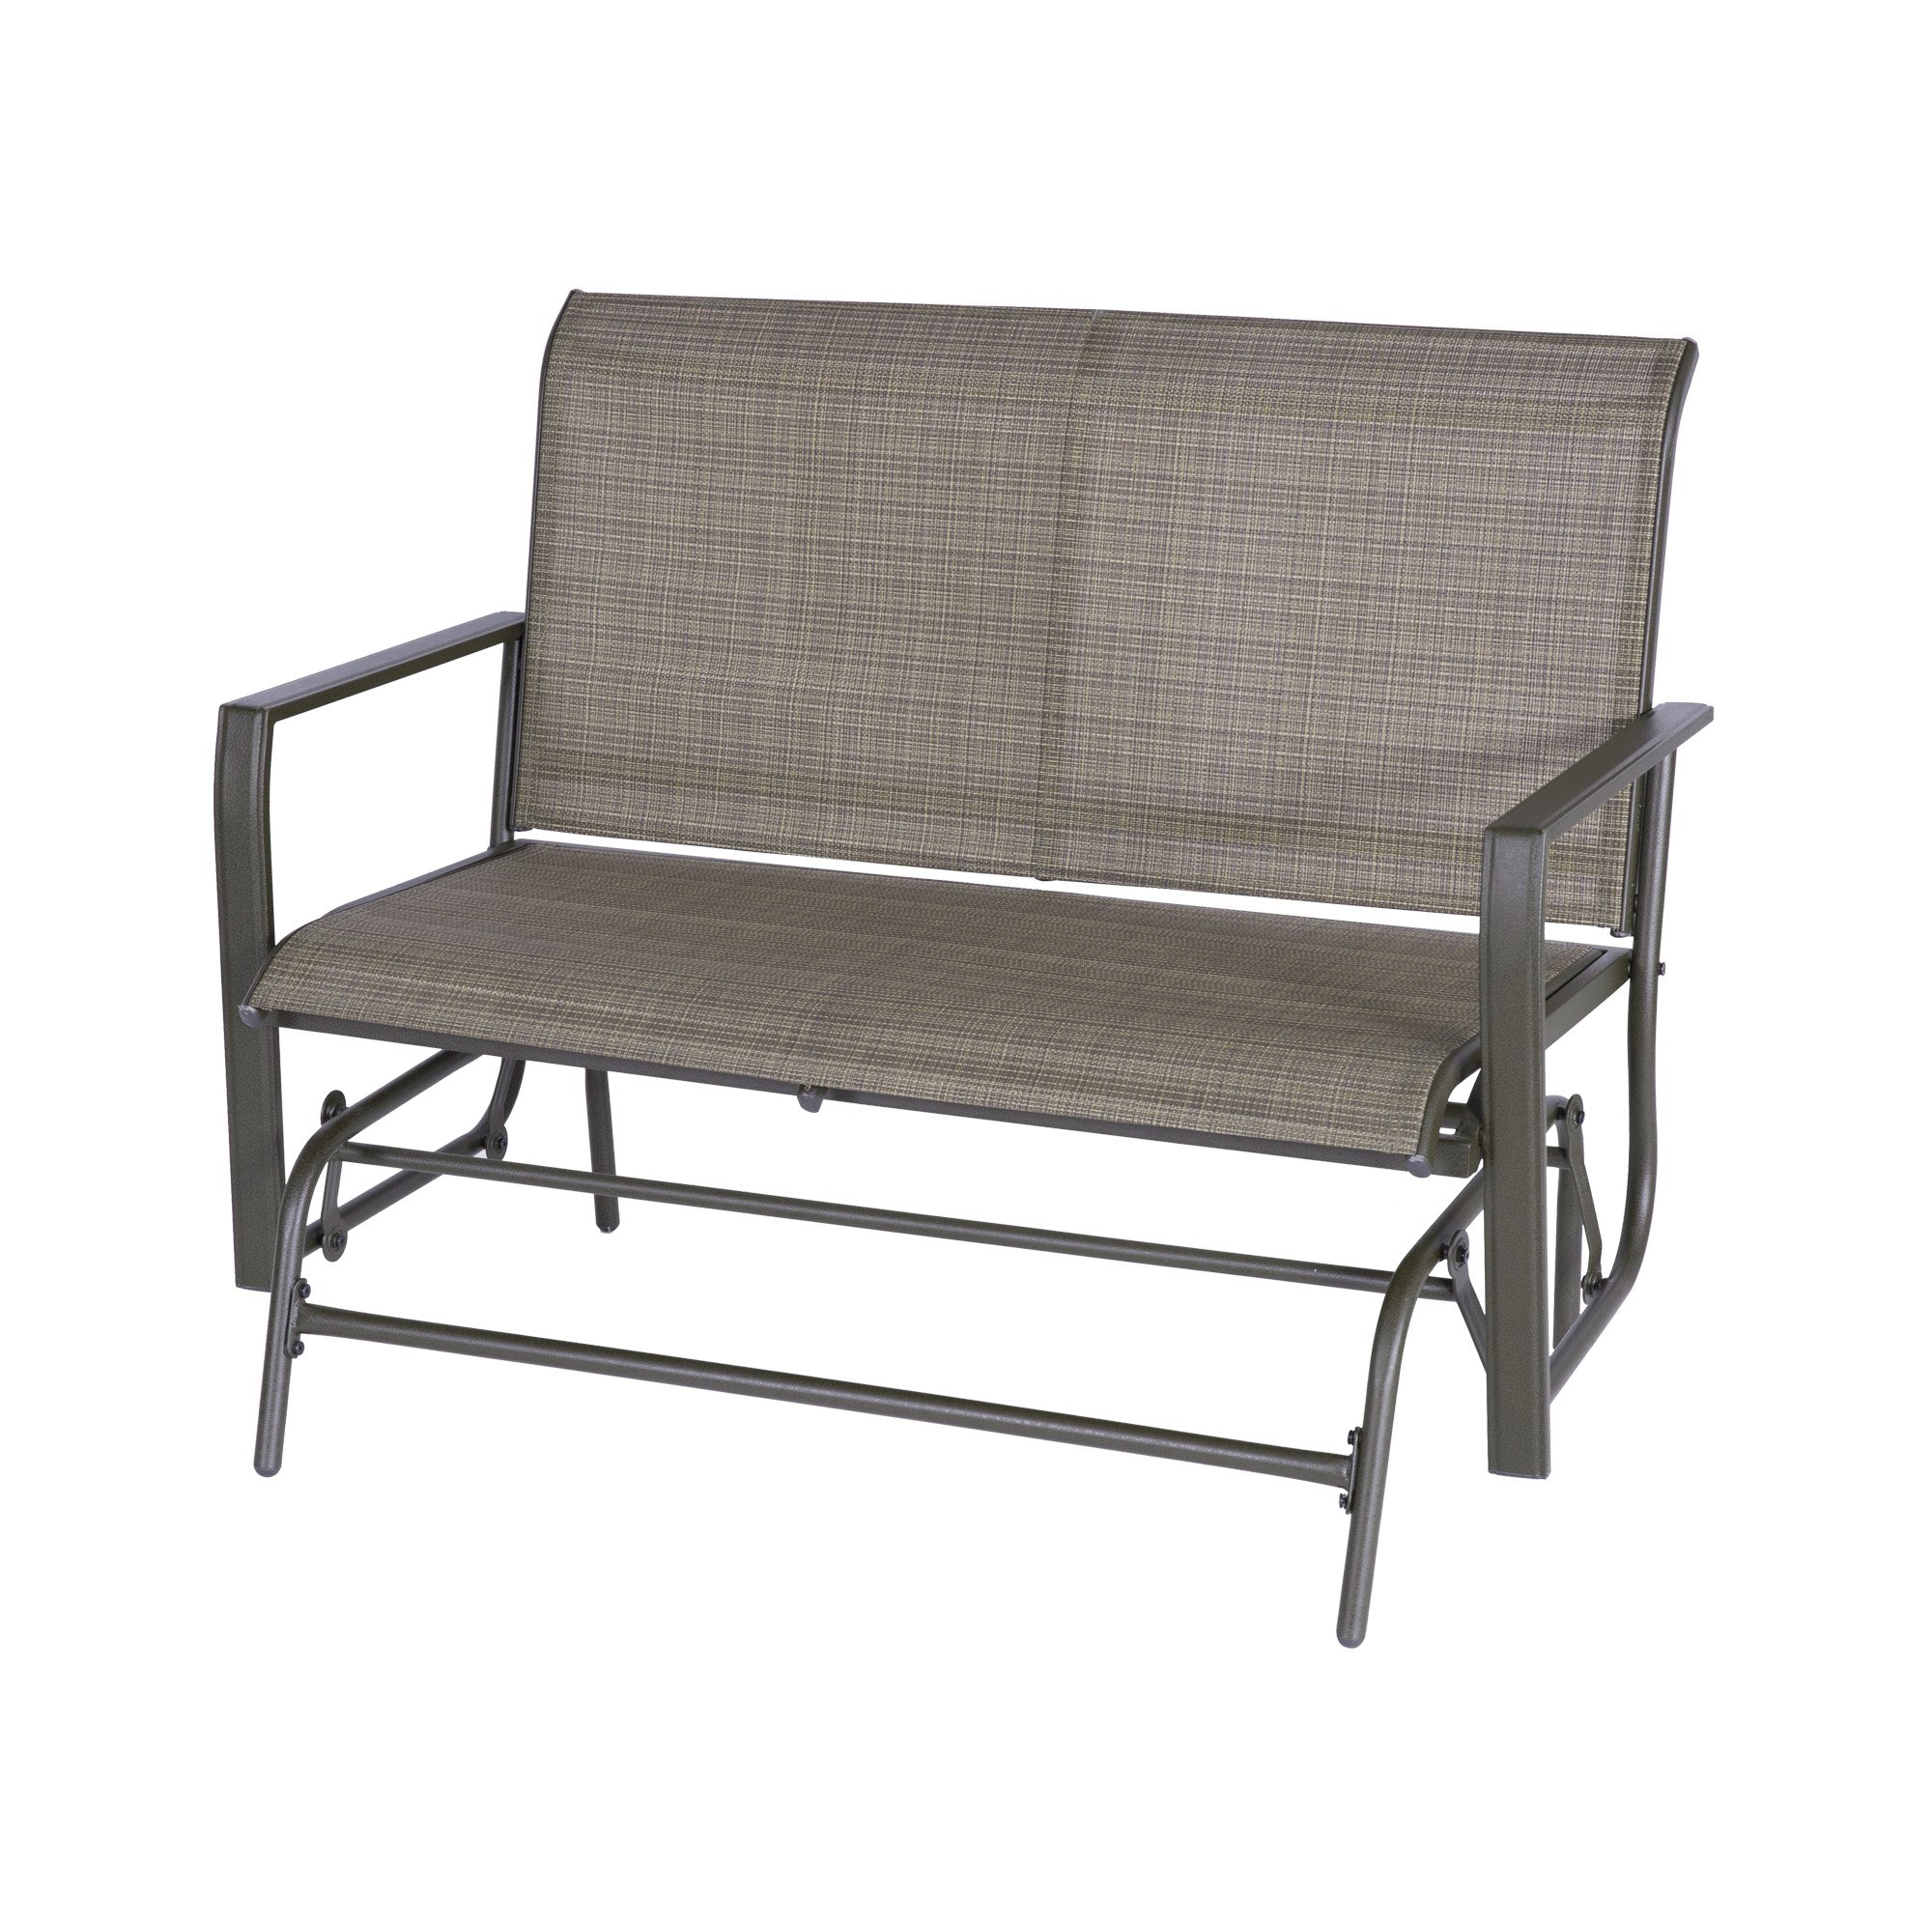 Patio Glider Bench Loveseat Outdoor Cushioed 2 Person In Steel Patio Swing Glider Benches (View 22 of 25)